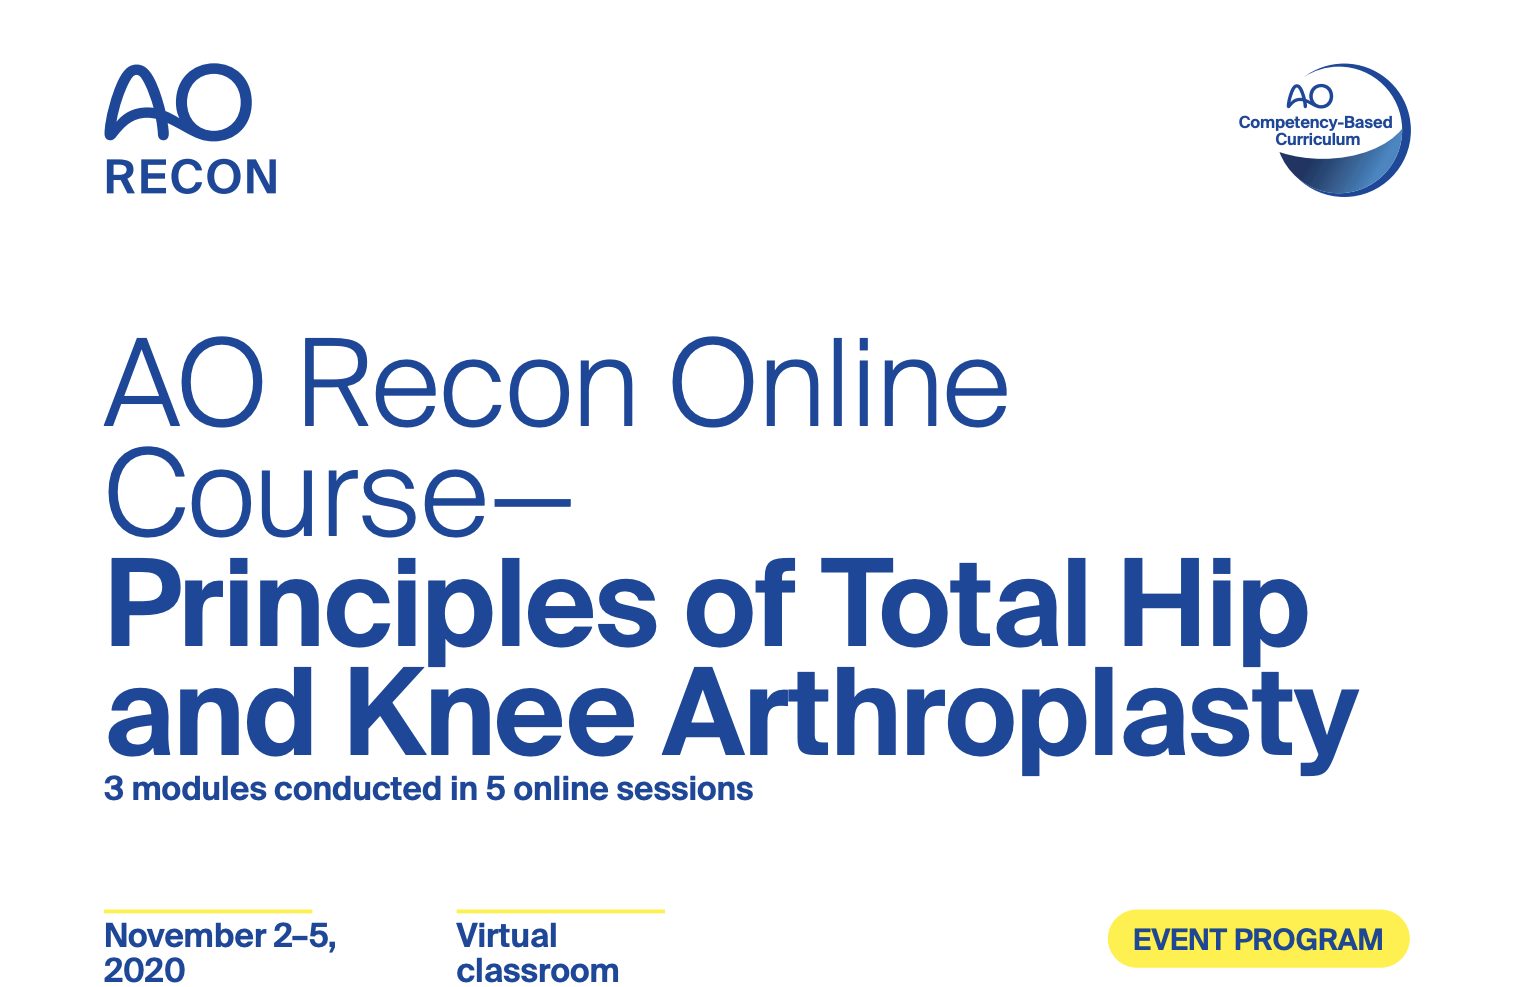 """AO Recon Online Course —Principles of Total Hip and Knee Arthroplasty""  02.-05.11.2020."